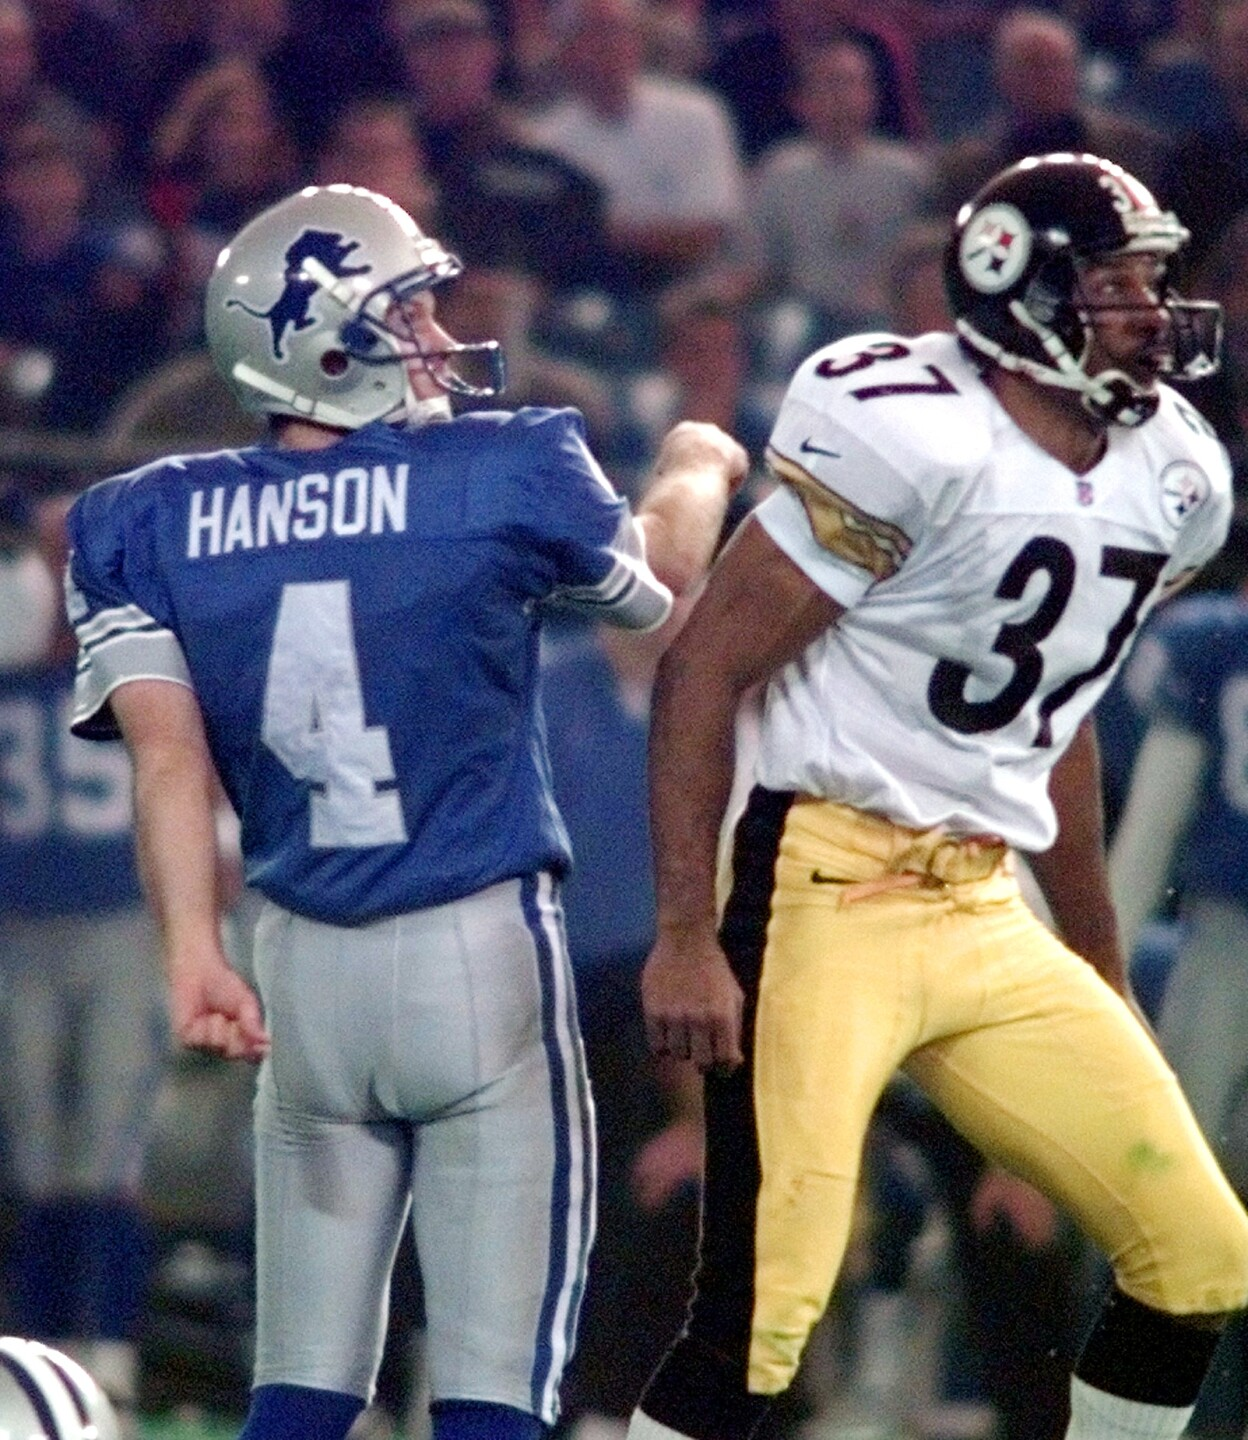 Detroit Lions kicker Chris Hanson after kicking game-winning FG vs. Pittsburgh Steelers on Thanksgiving in 1998